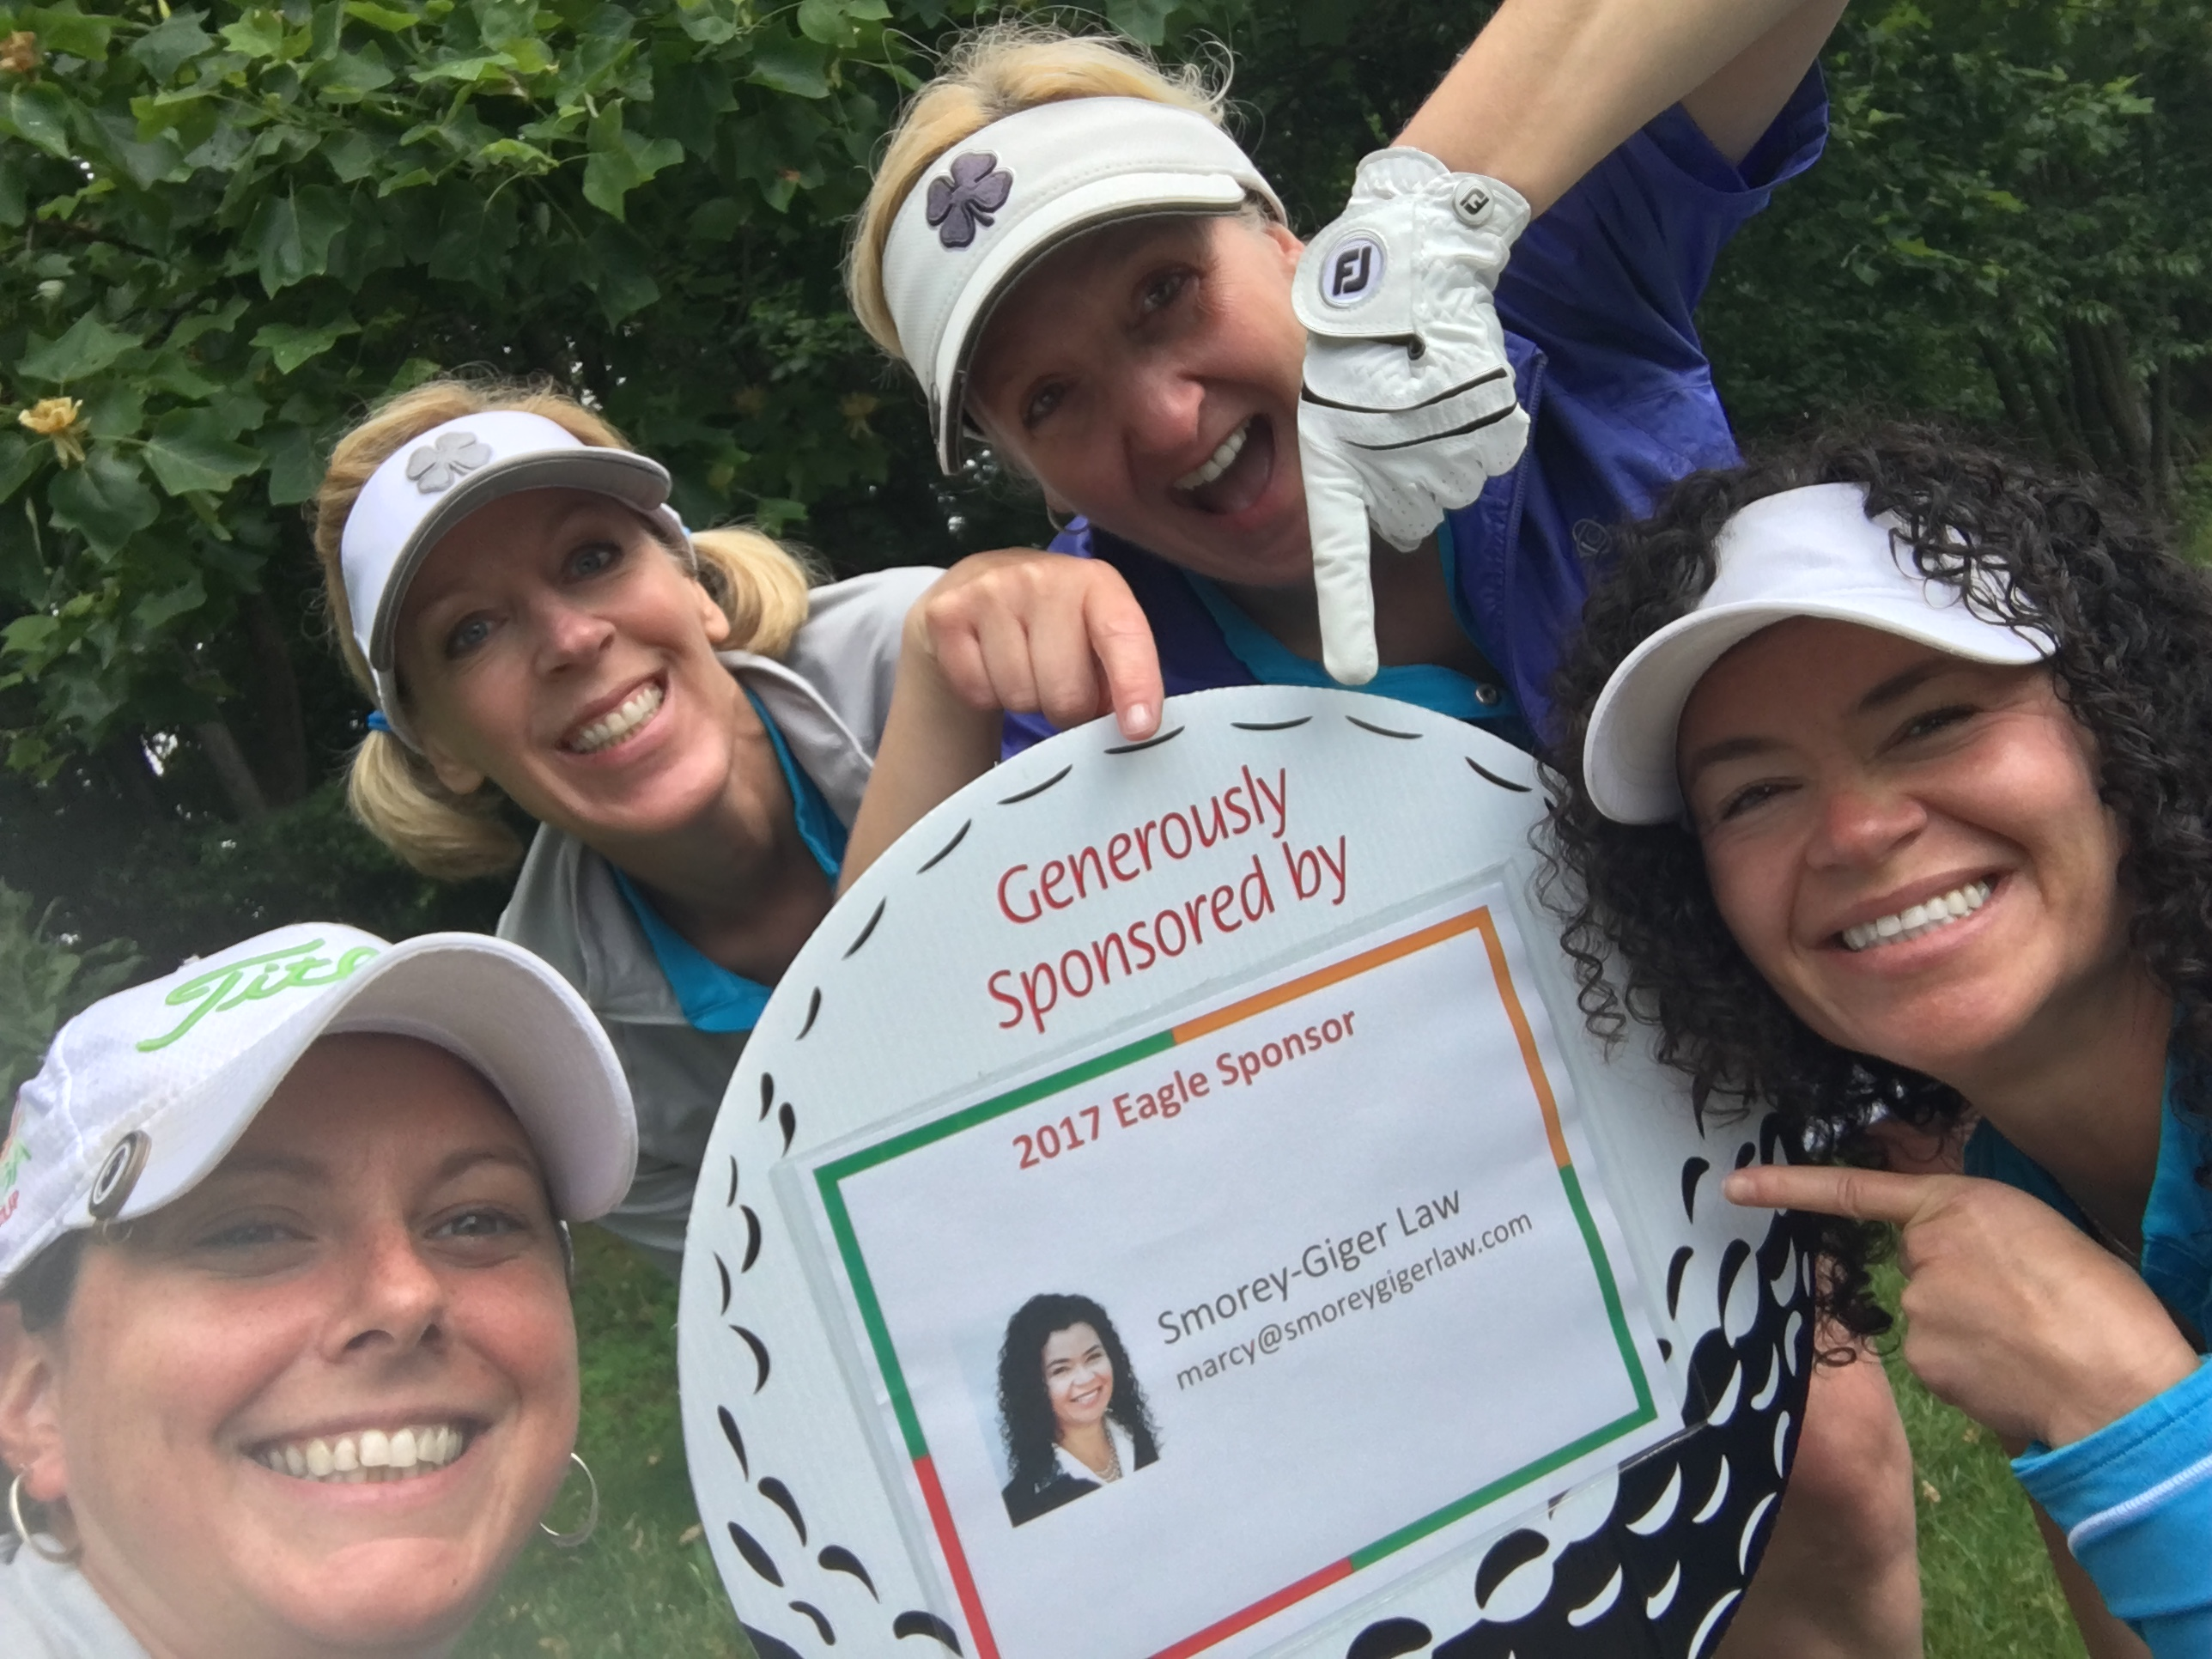 Smorey Giger Law sponsor for Executive Women's Golf Association Pittsburgh - Chapter Championship